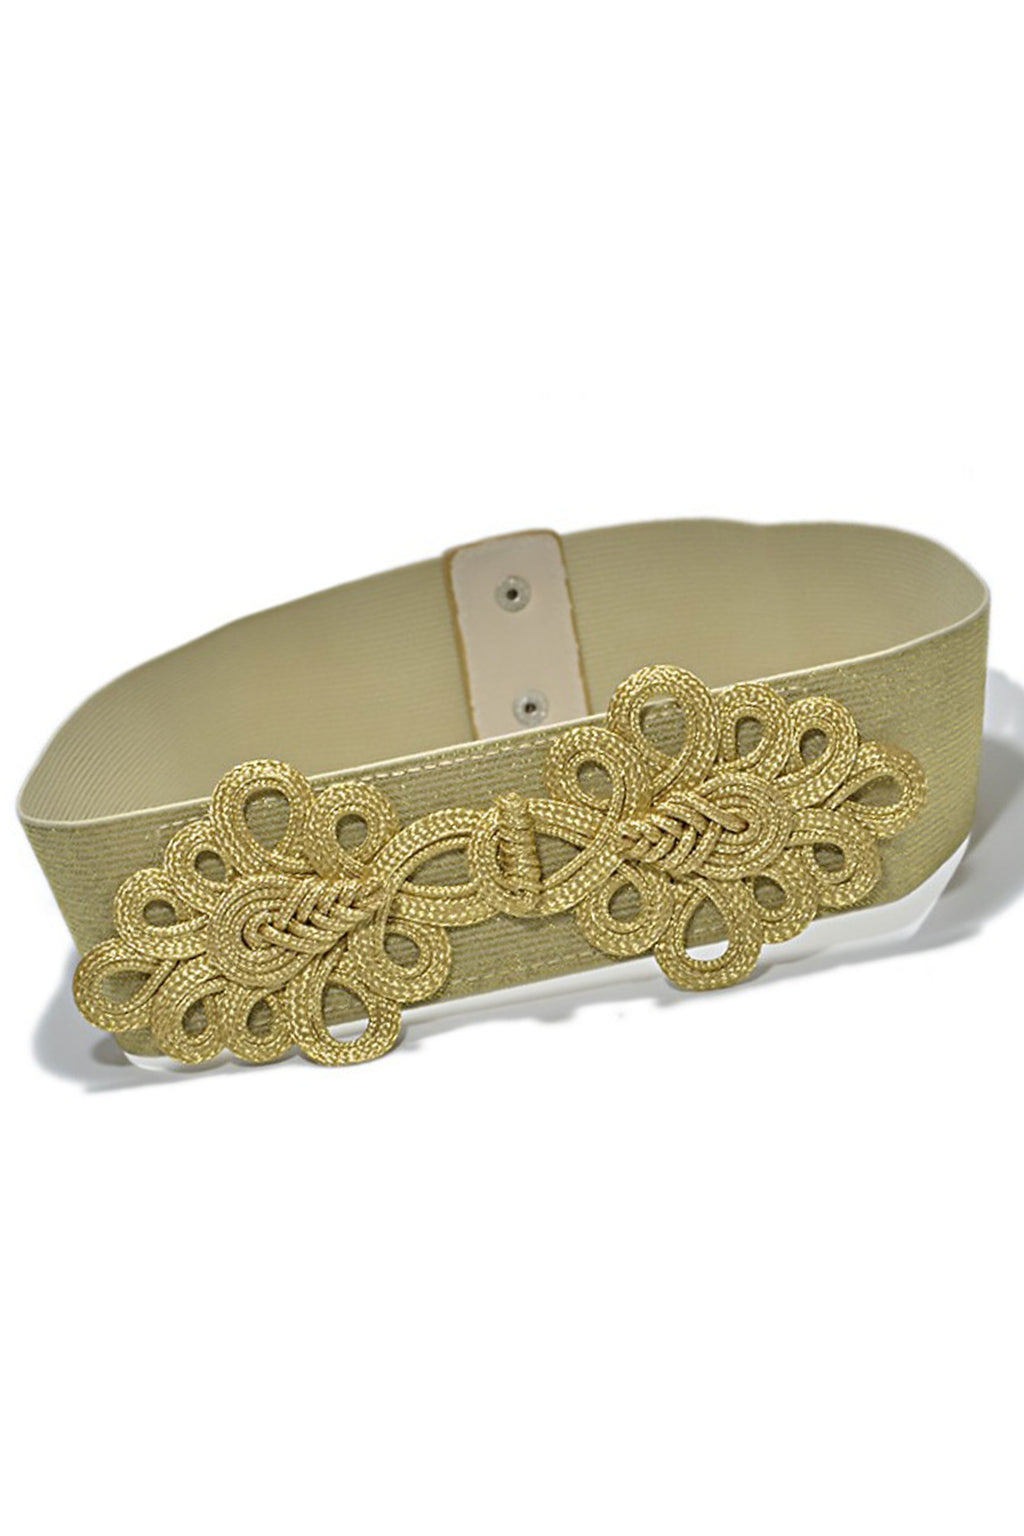 Gold Silver Stretch Floral Belt